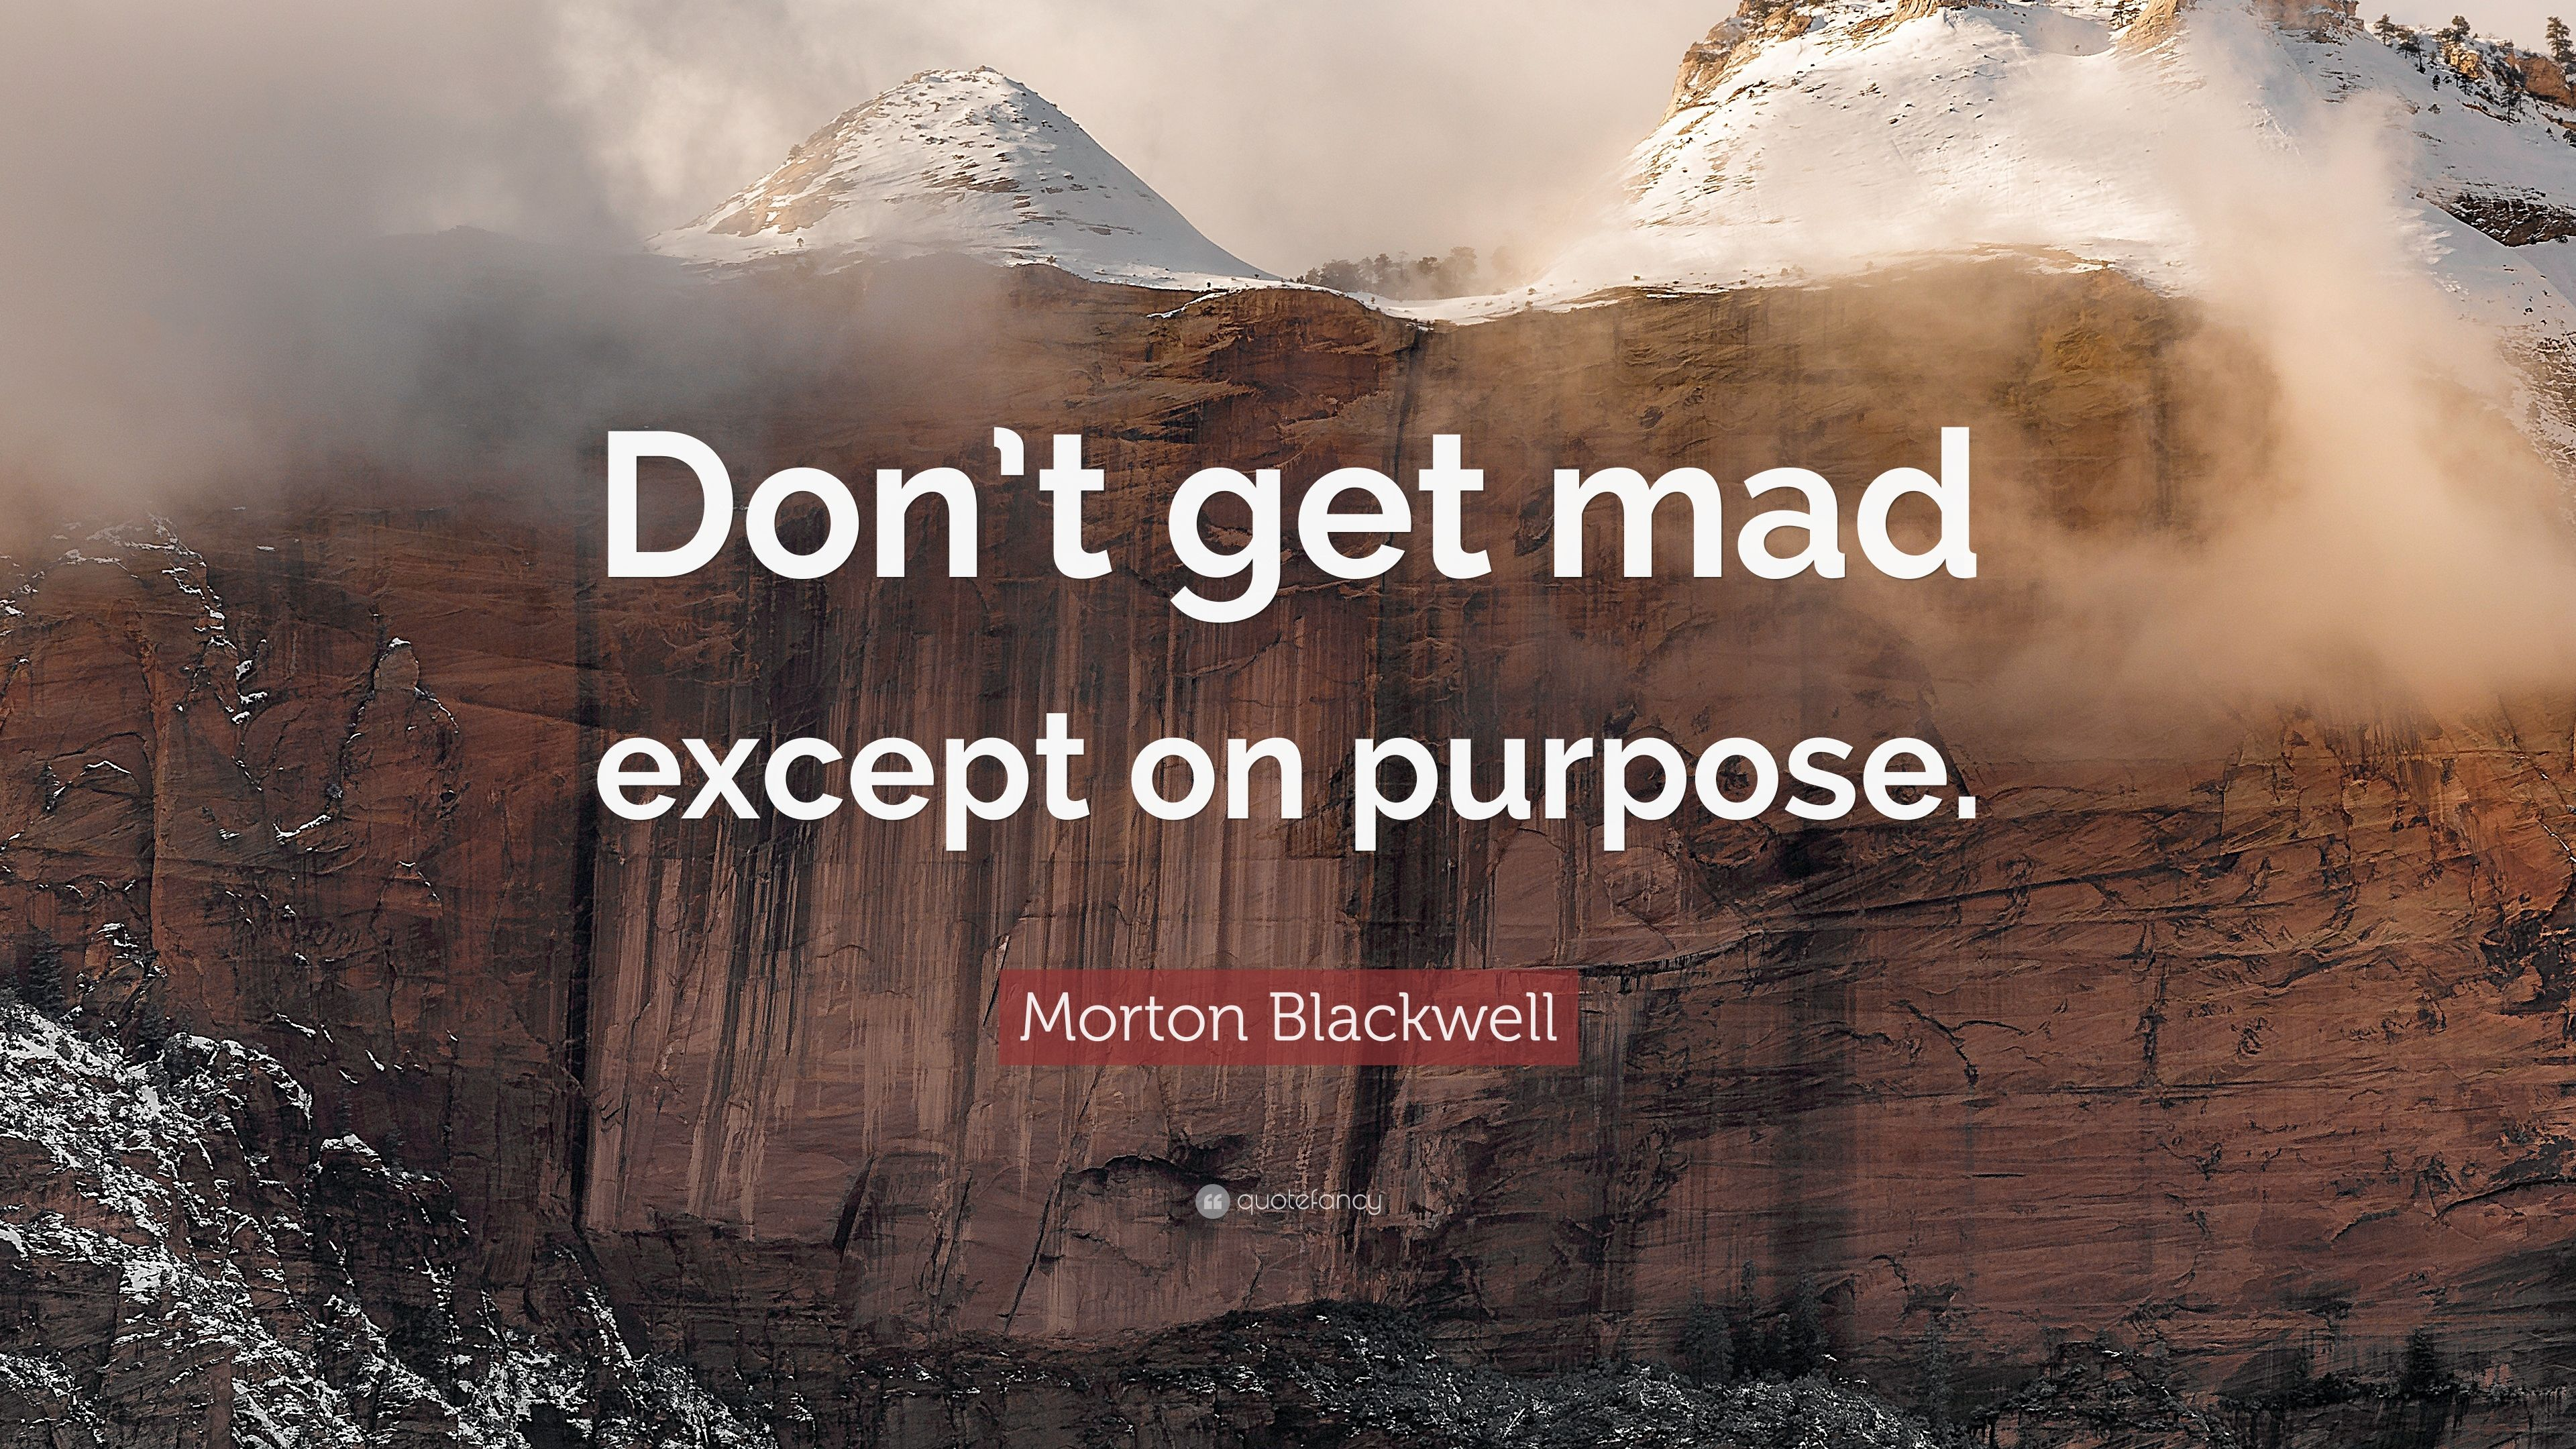 Morton Blackwell Quote: U201cDonu0027t Get Mad Except On Purpose.u201d